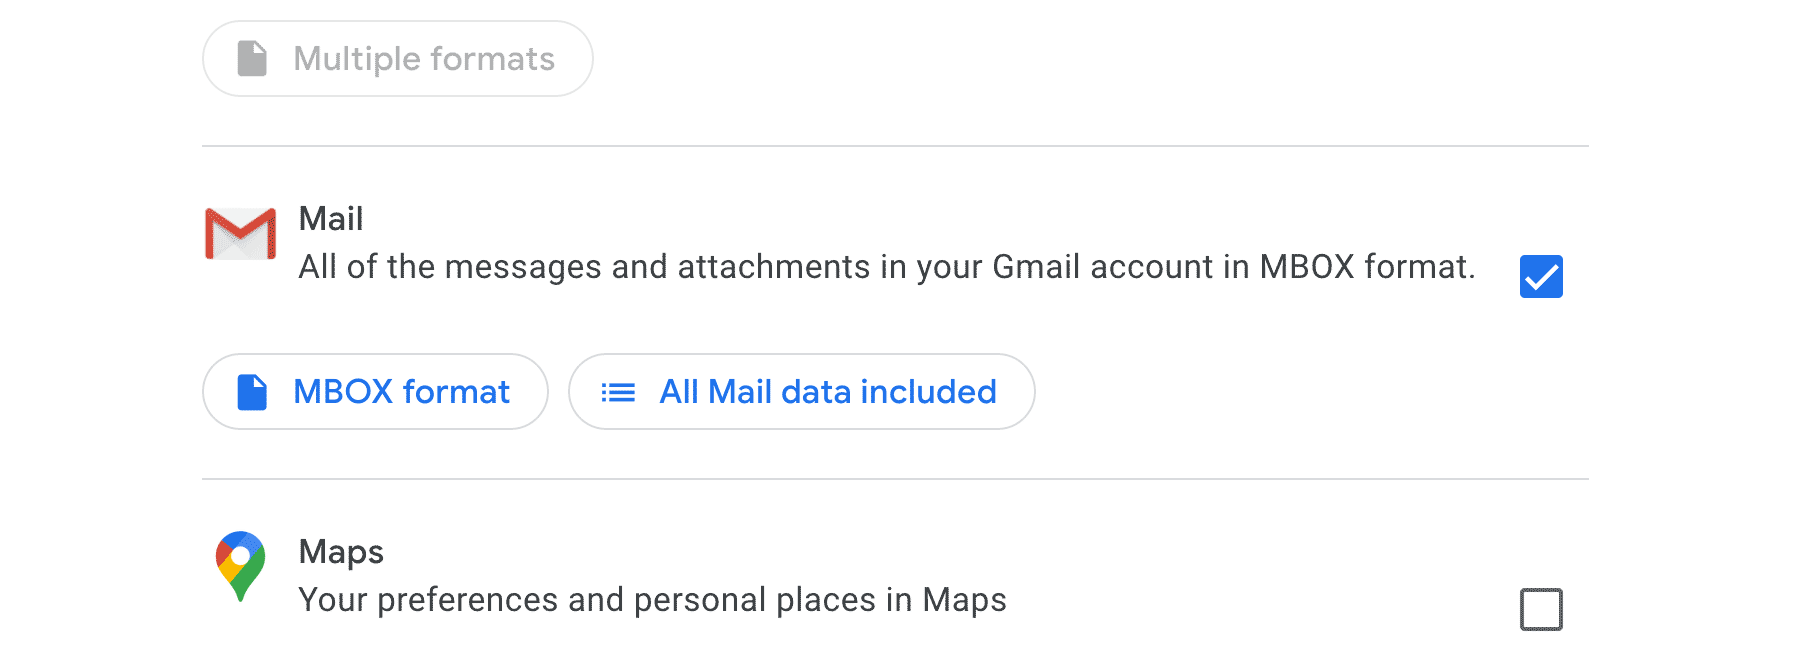 selecting 'Mail' in Google Takeout